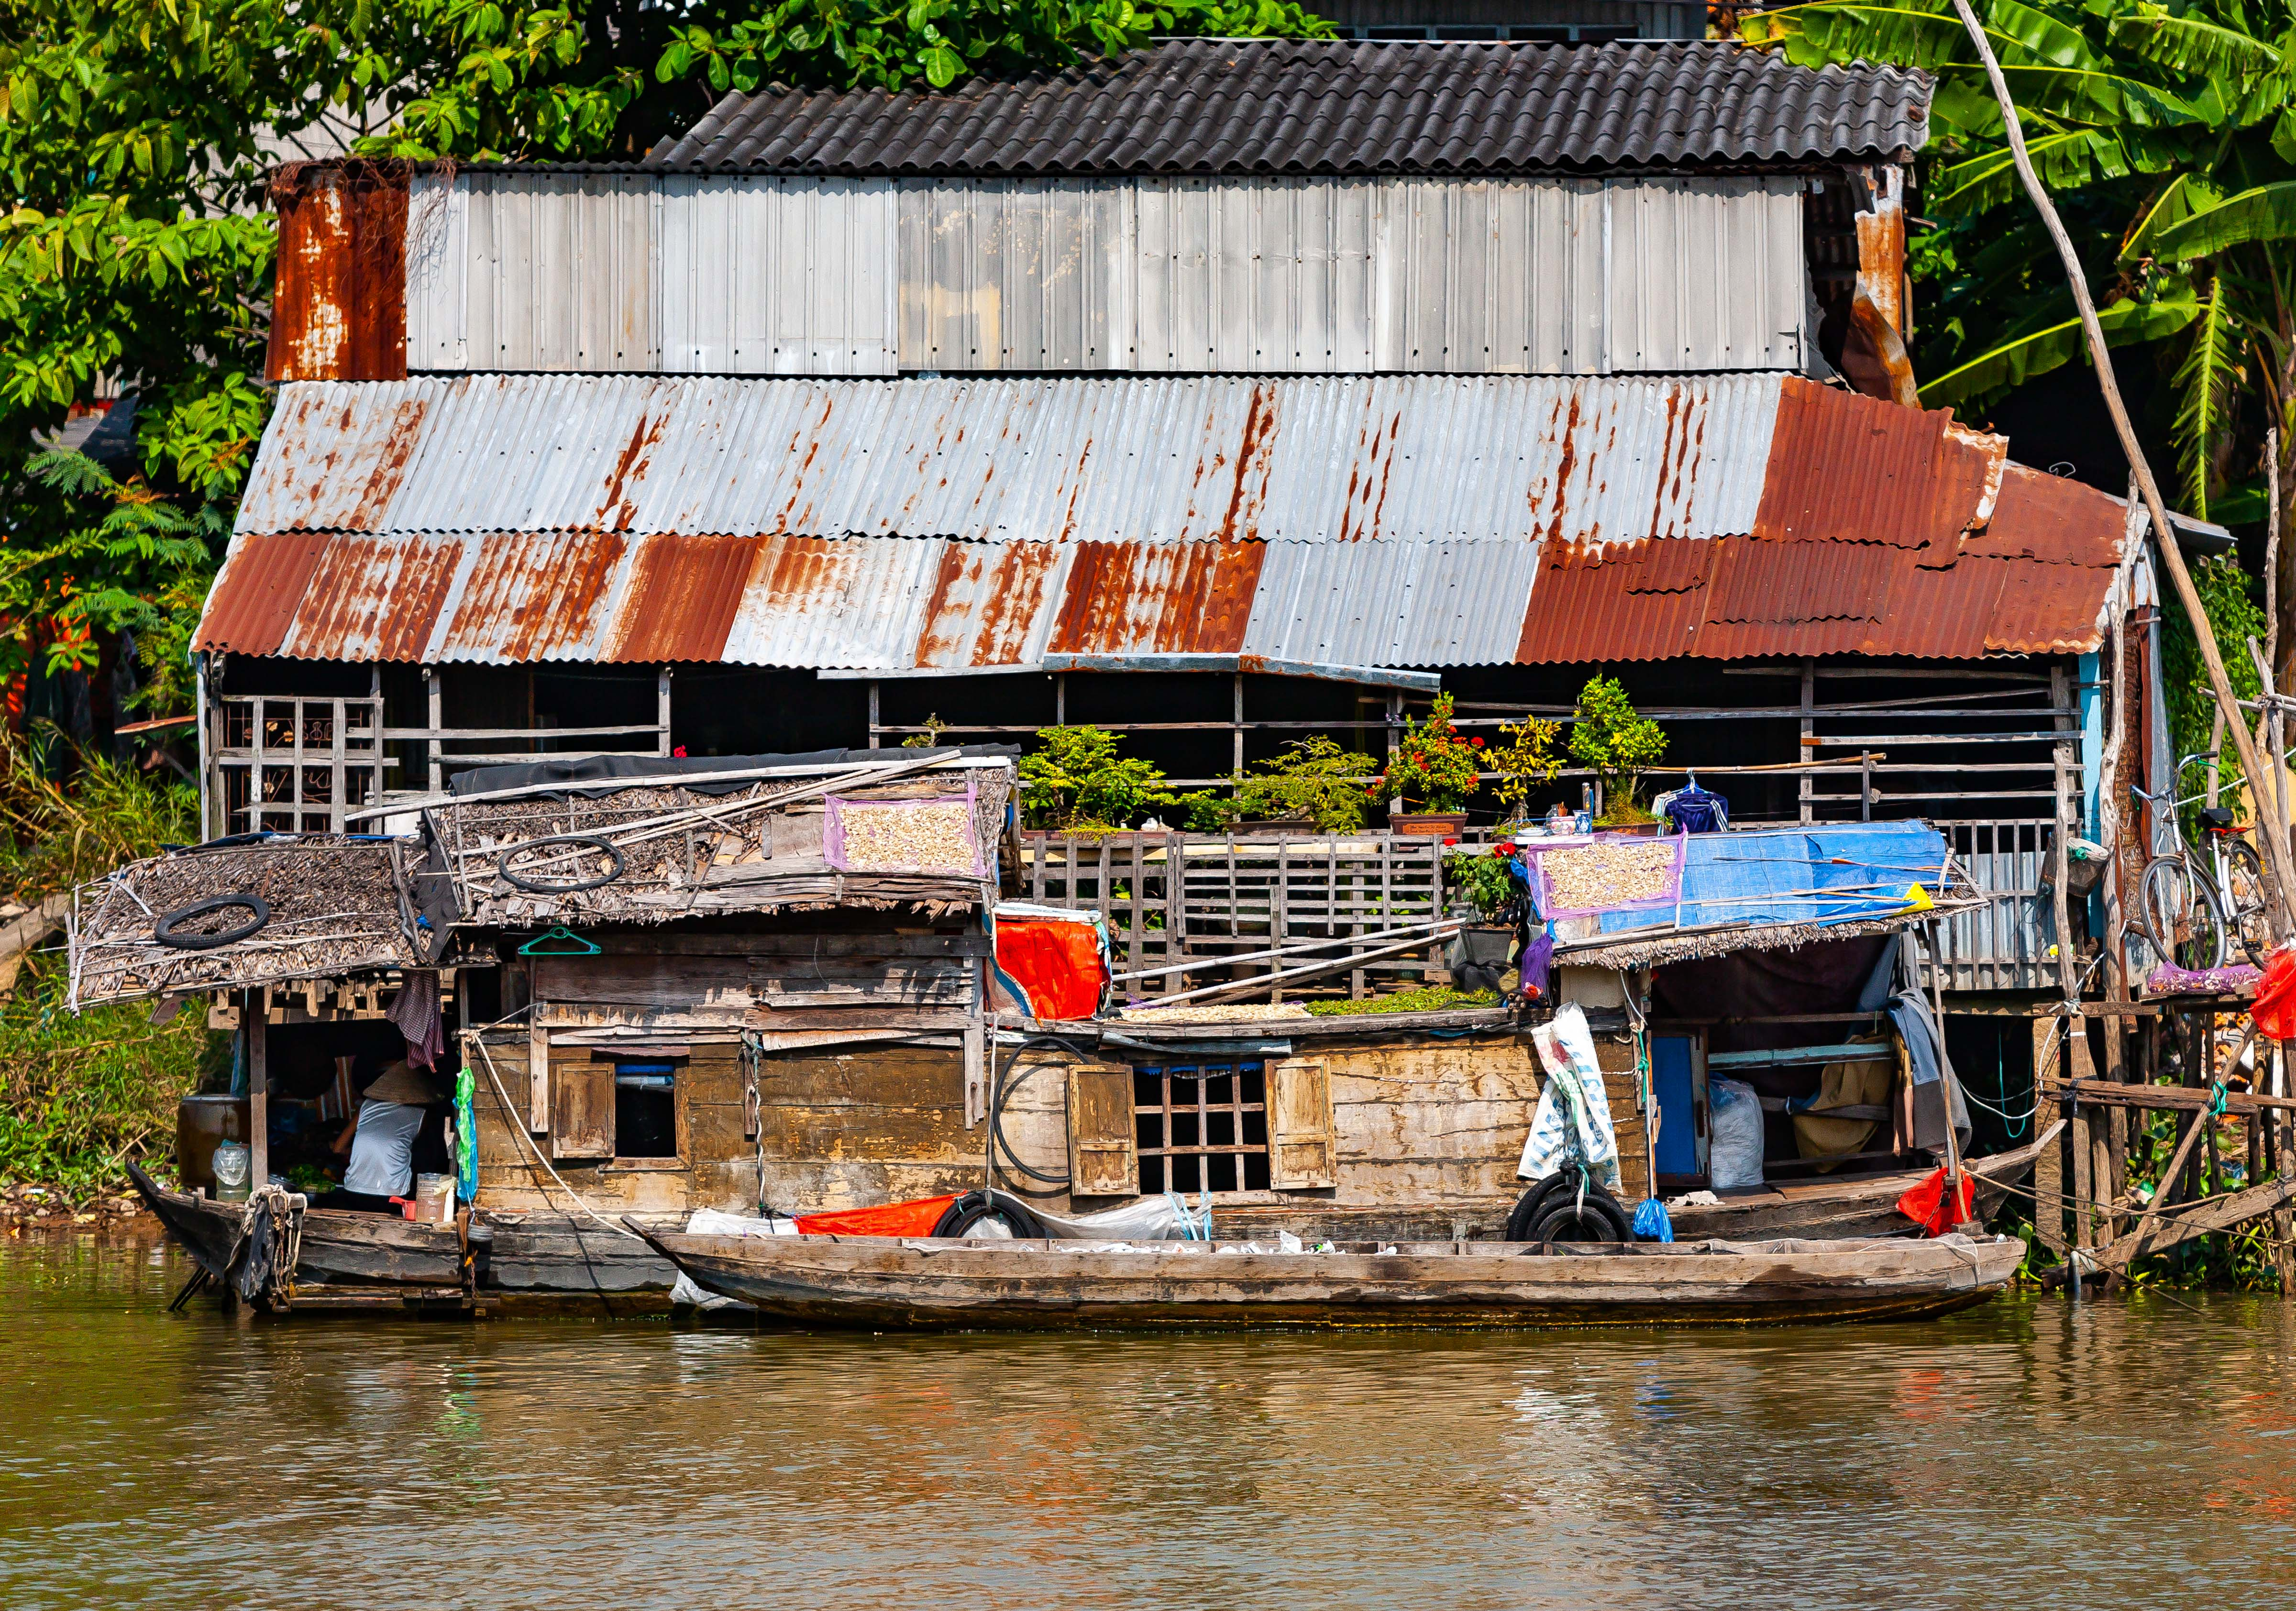 Vietnam, An Giang Prov, House Boat, 2010, IMG 1819